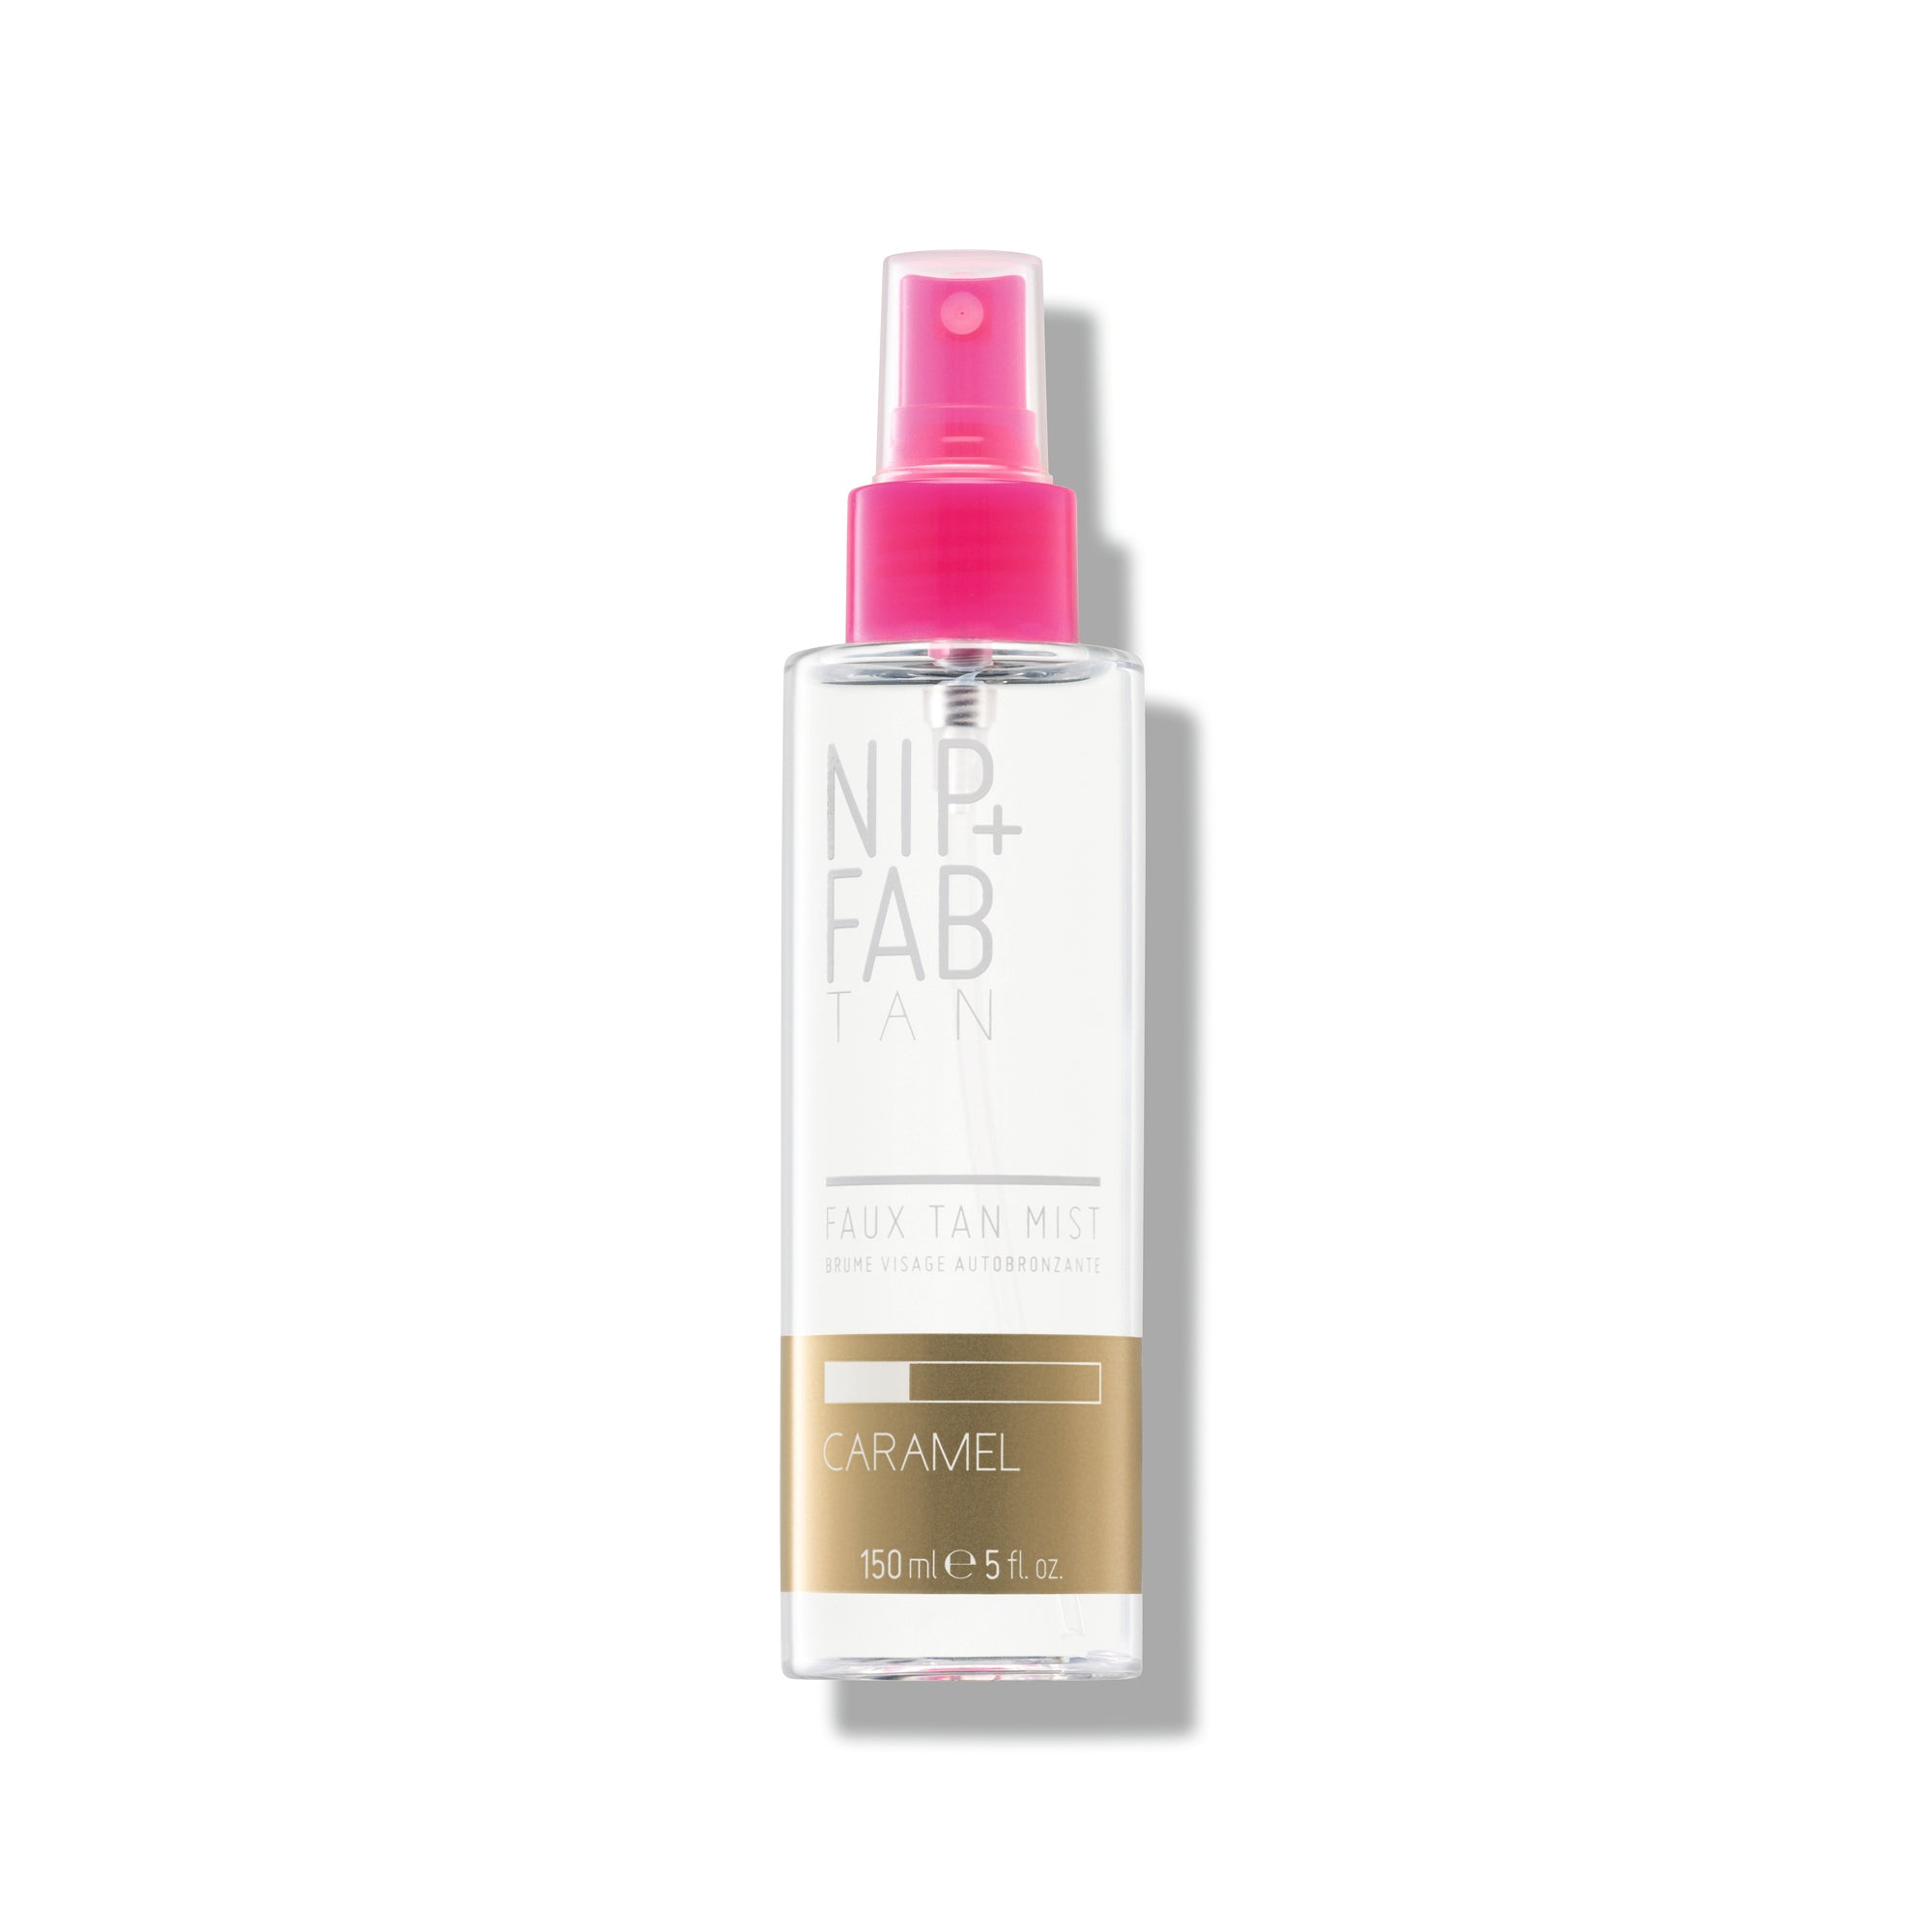 SELF TAN SPRAY CARAMEL μαύρισμα